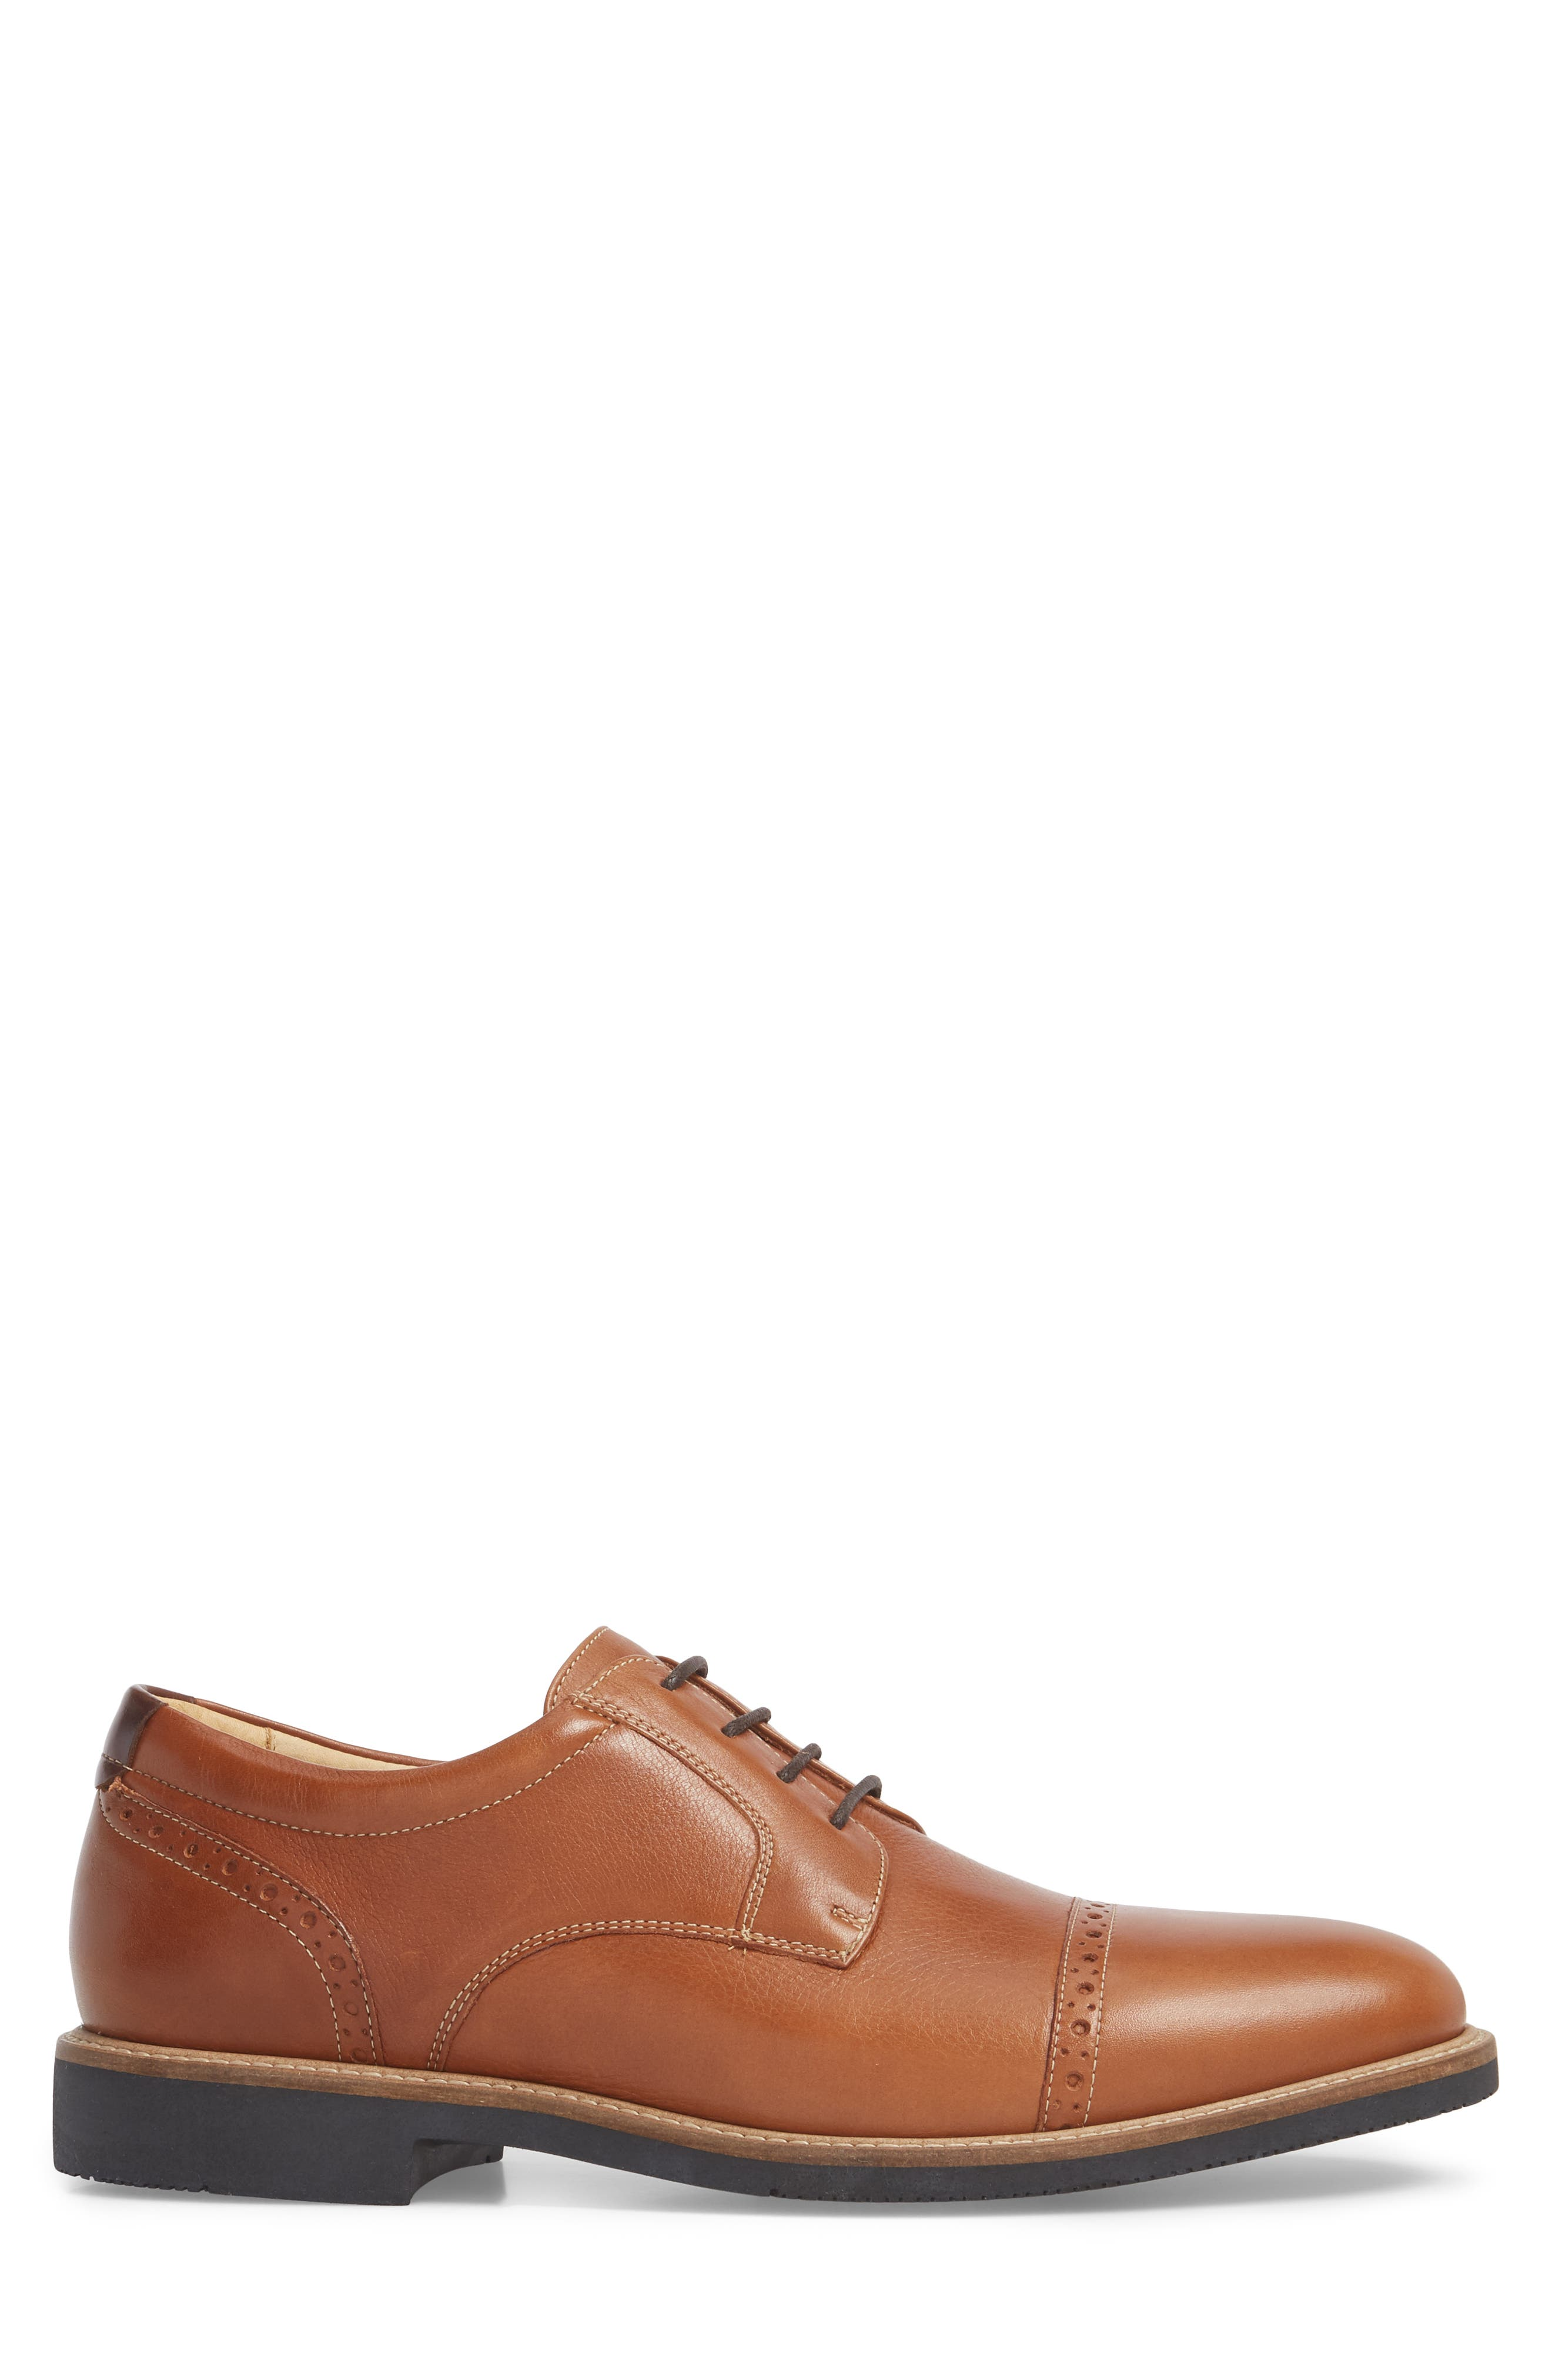 JOHNSTON & MURPHY,                             Barlow Cap Toe Derby,                             Alternate thumbnail 3, color,                             TAN LEATHER